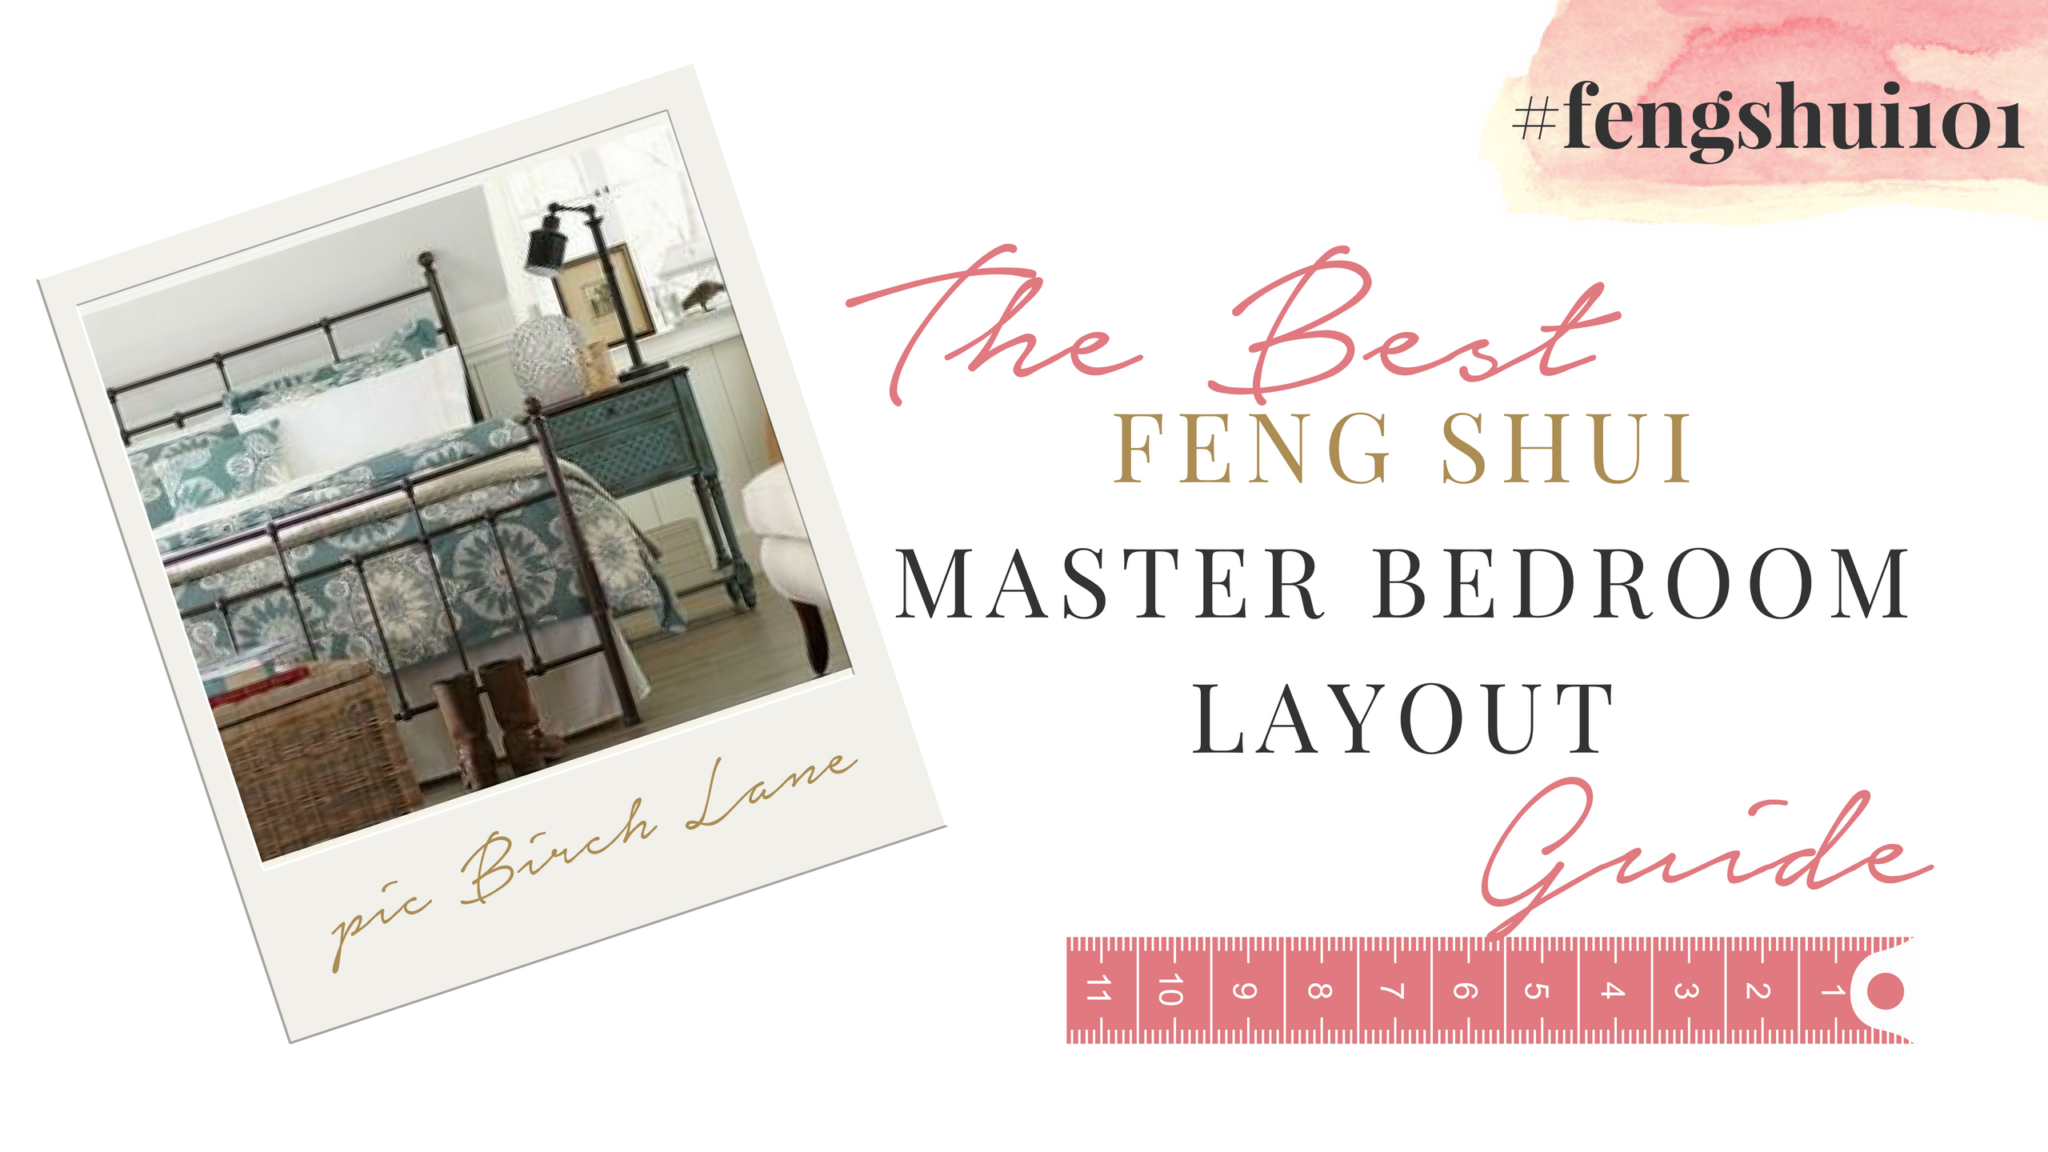 The Best Feng Shui Master Bedroom Layout Guide Fengshui101